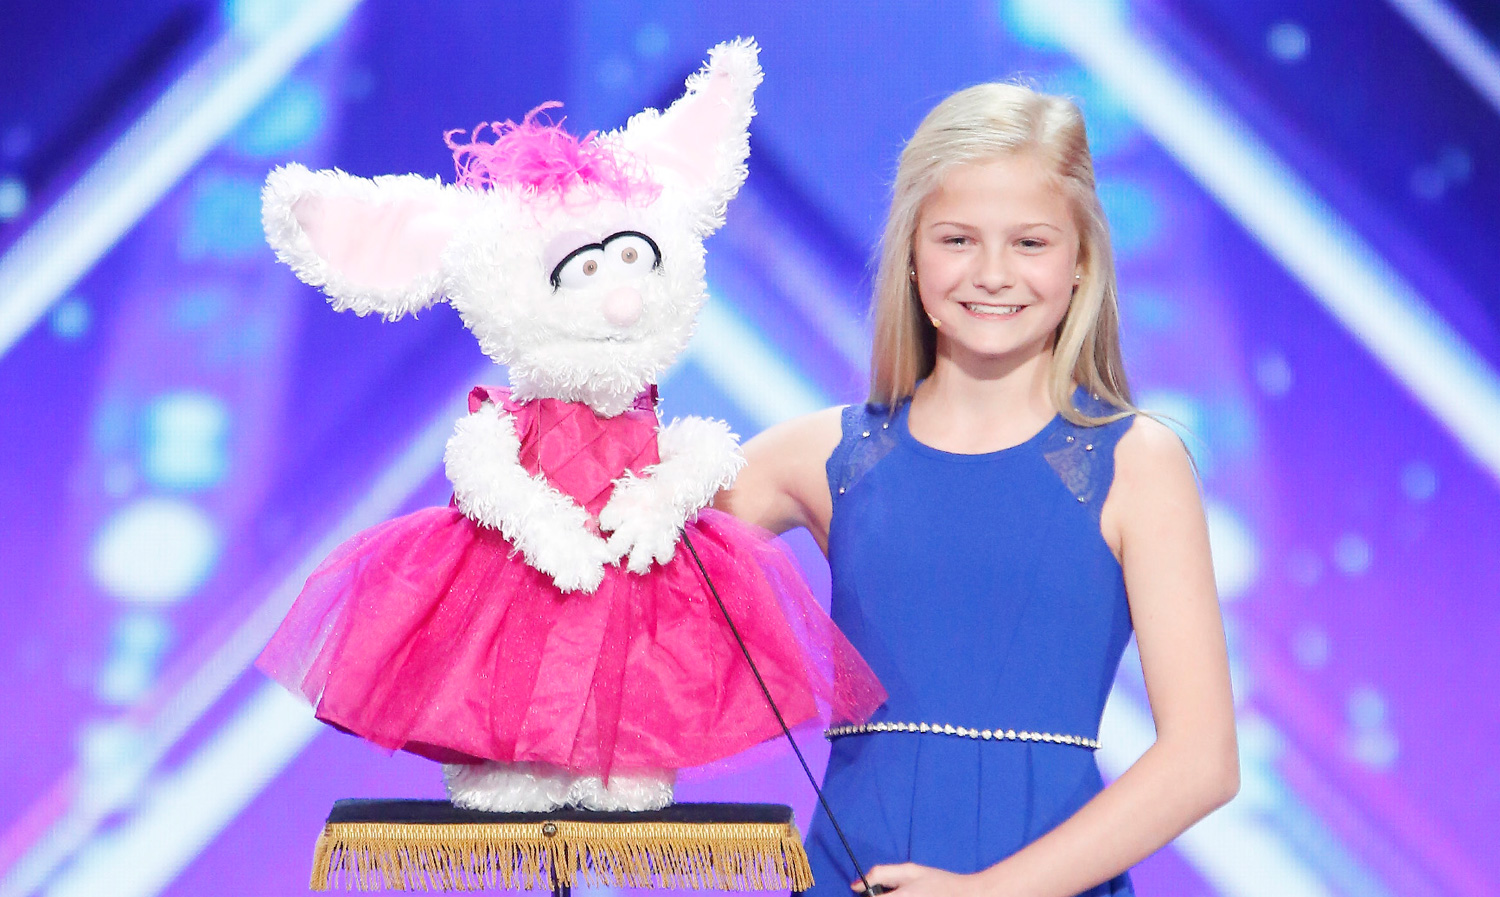 America's Got Talent season 12 winner revealed | EW.com